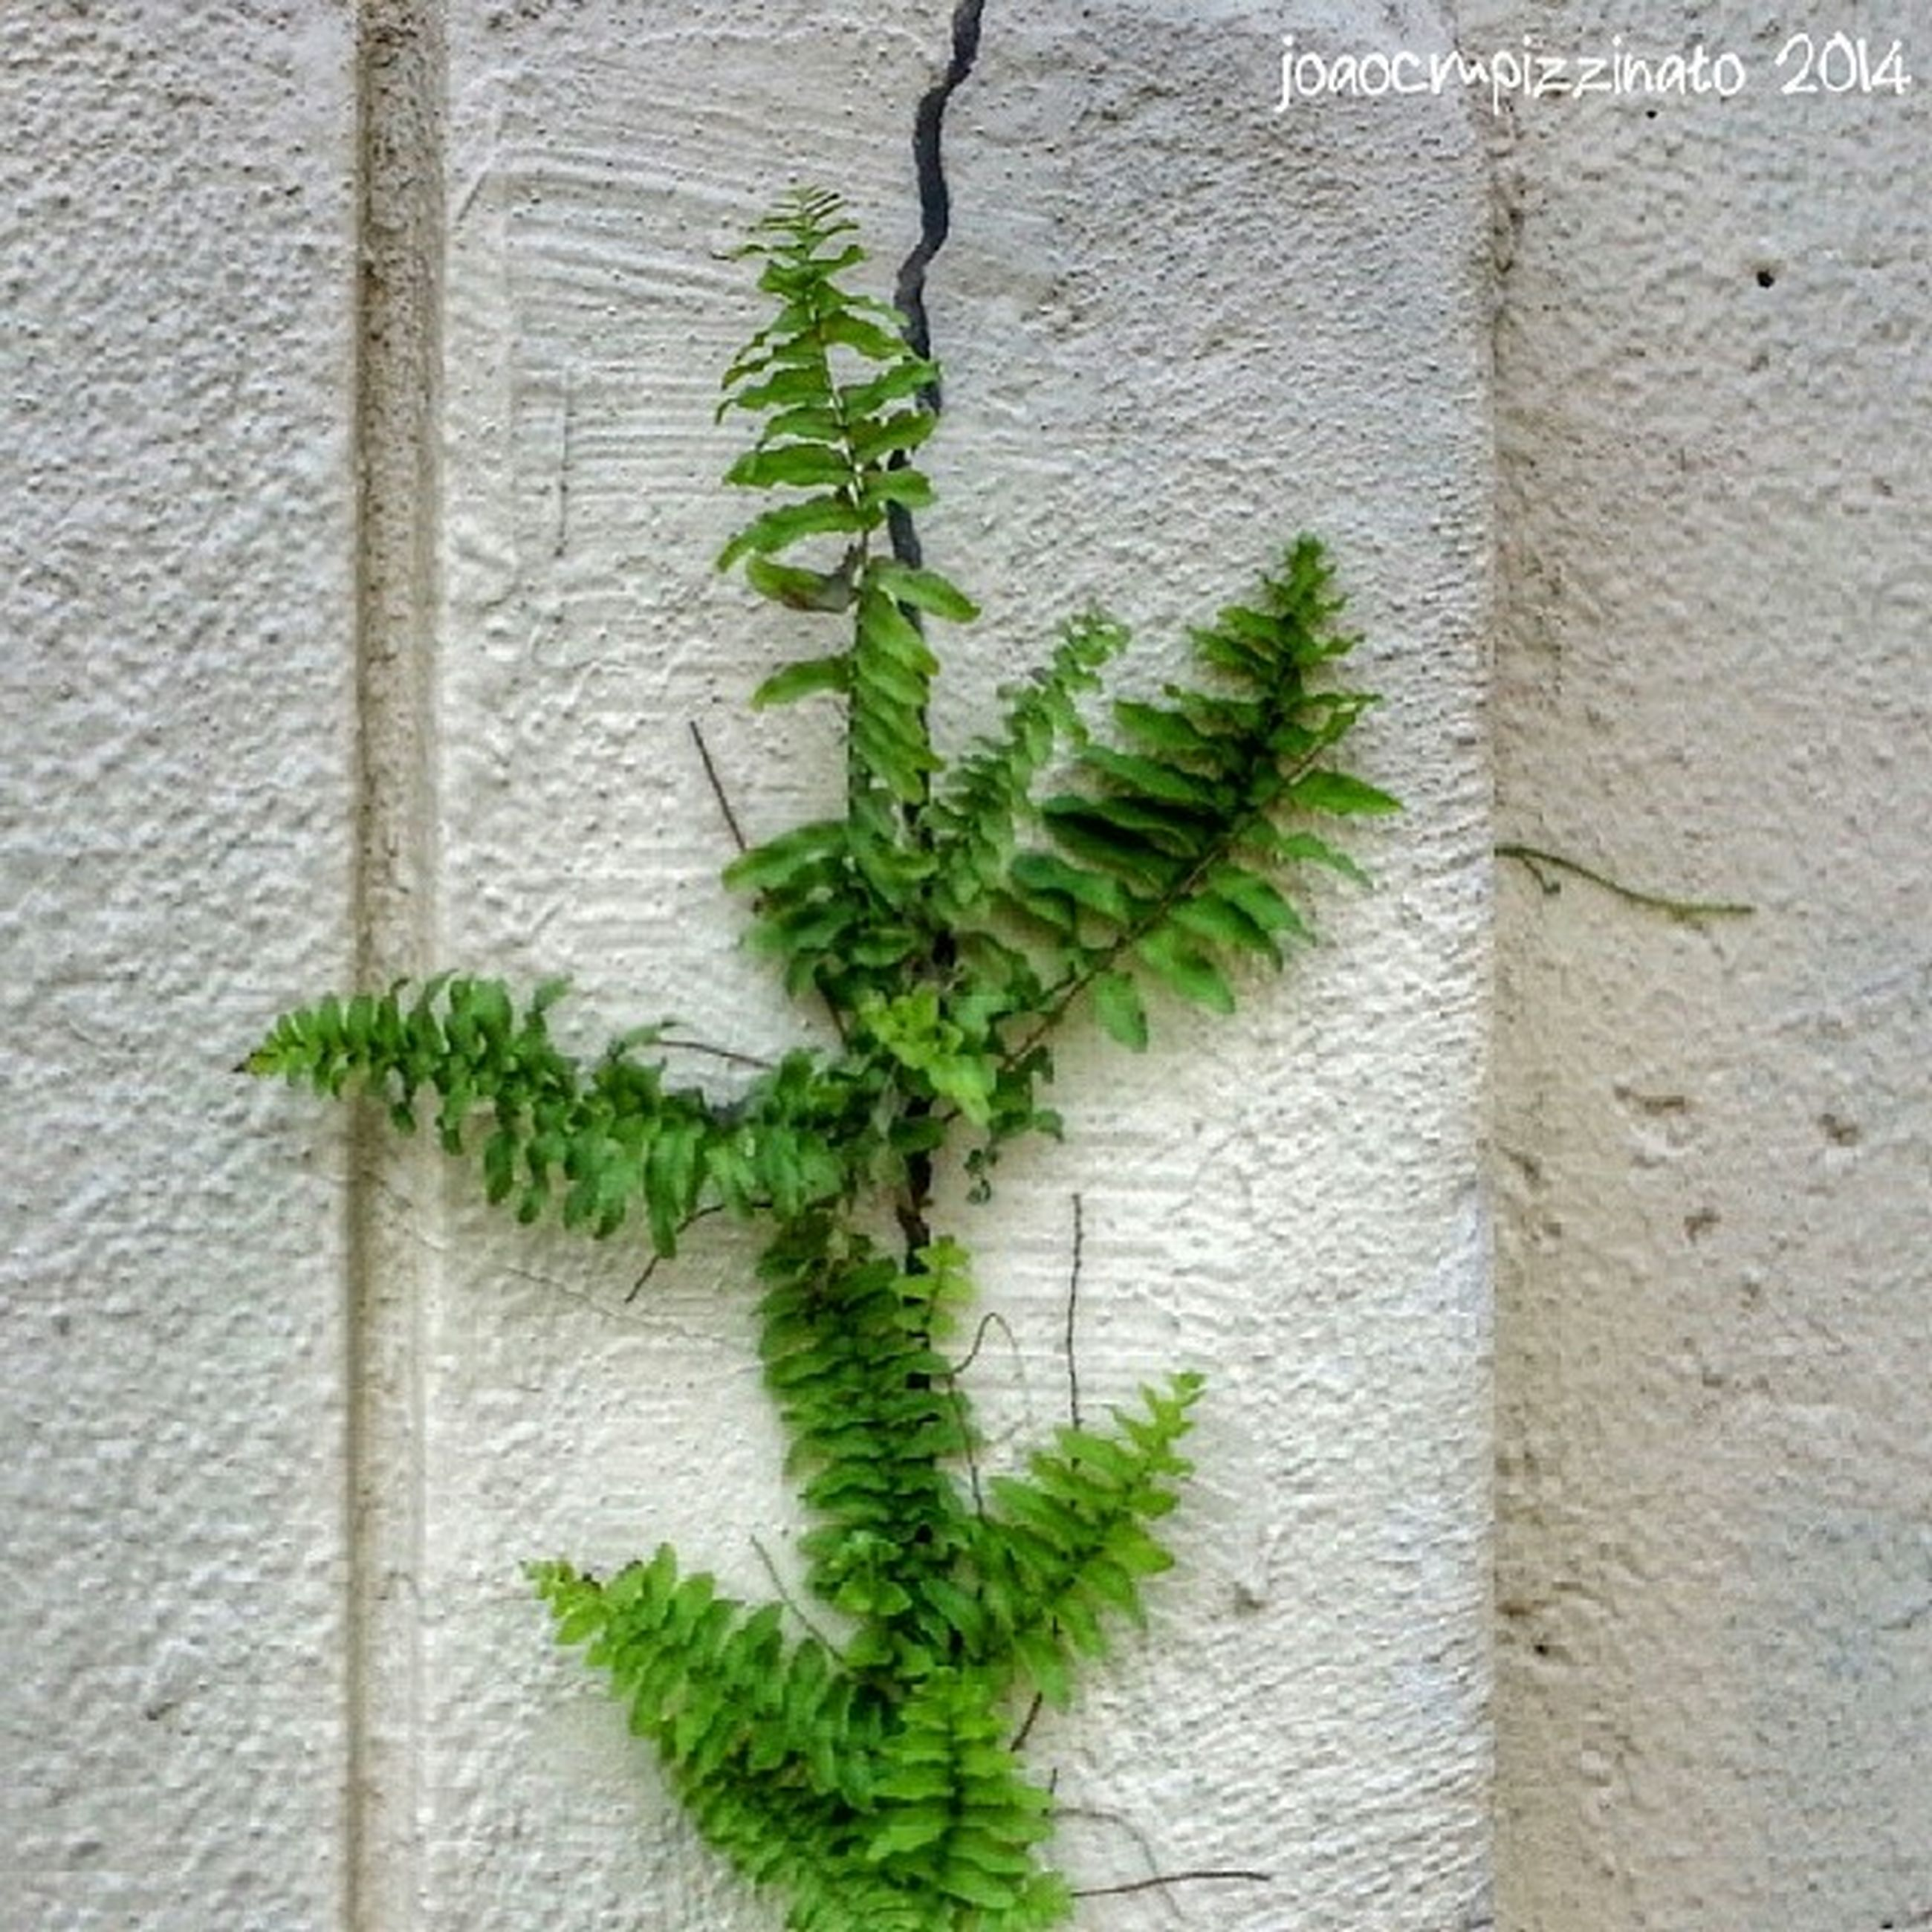 plant, growth, leaf, green color, wall - building feature, growing, potted plant, ivy, nature, close-up, freshness, built structure, wall, architecture, no people, day, green, outdoors, brick wall, sunlight